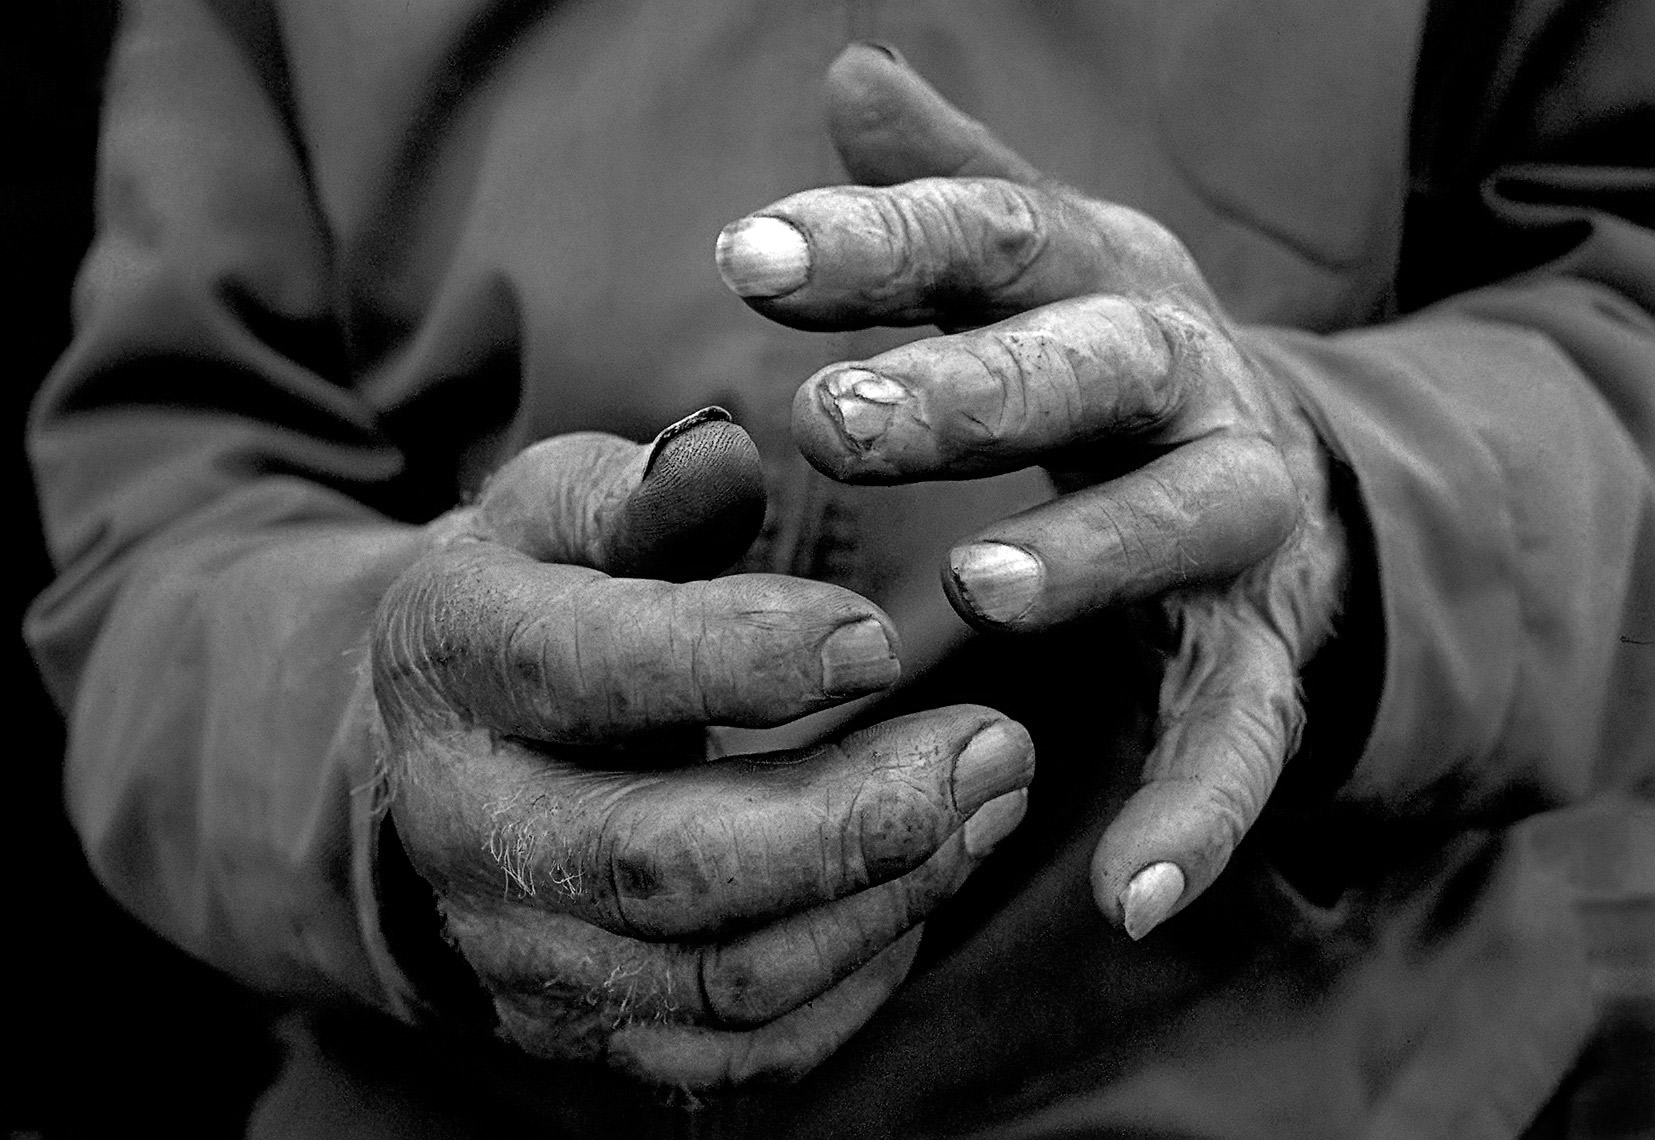 Farmer hands | Fargo photographer Dan Koeck